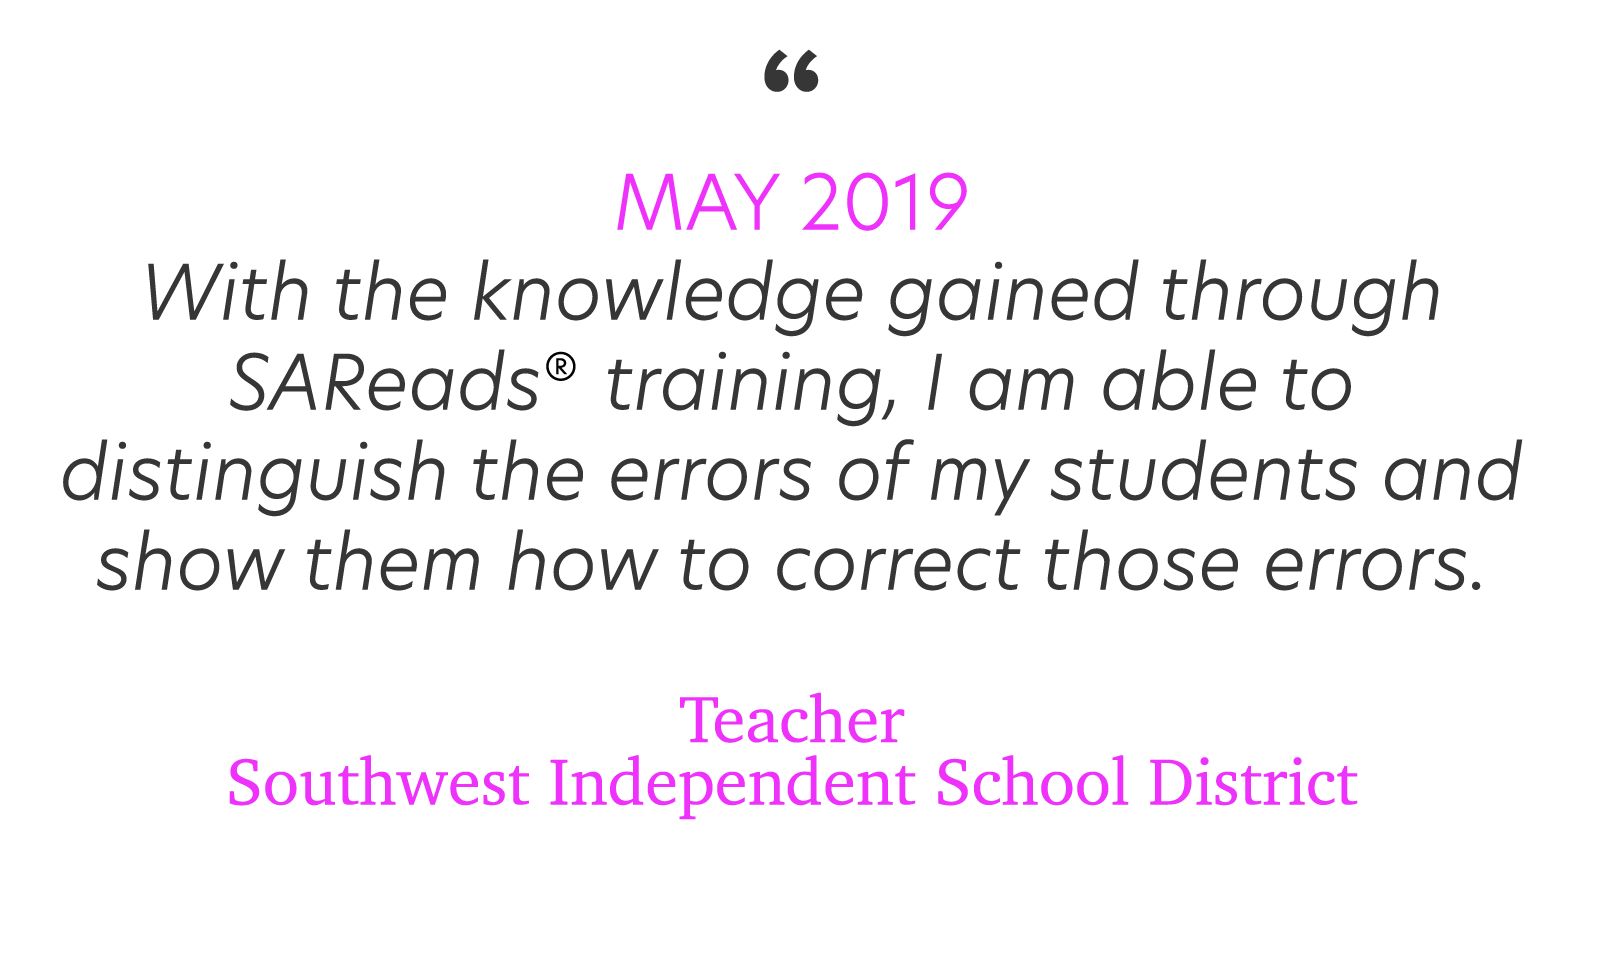 quote-teacher1.png